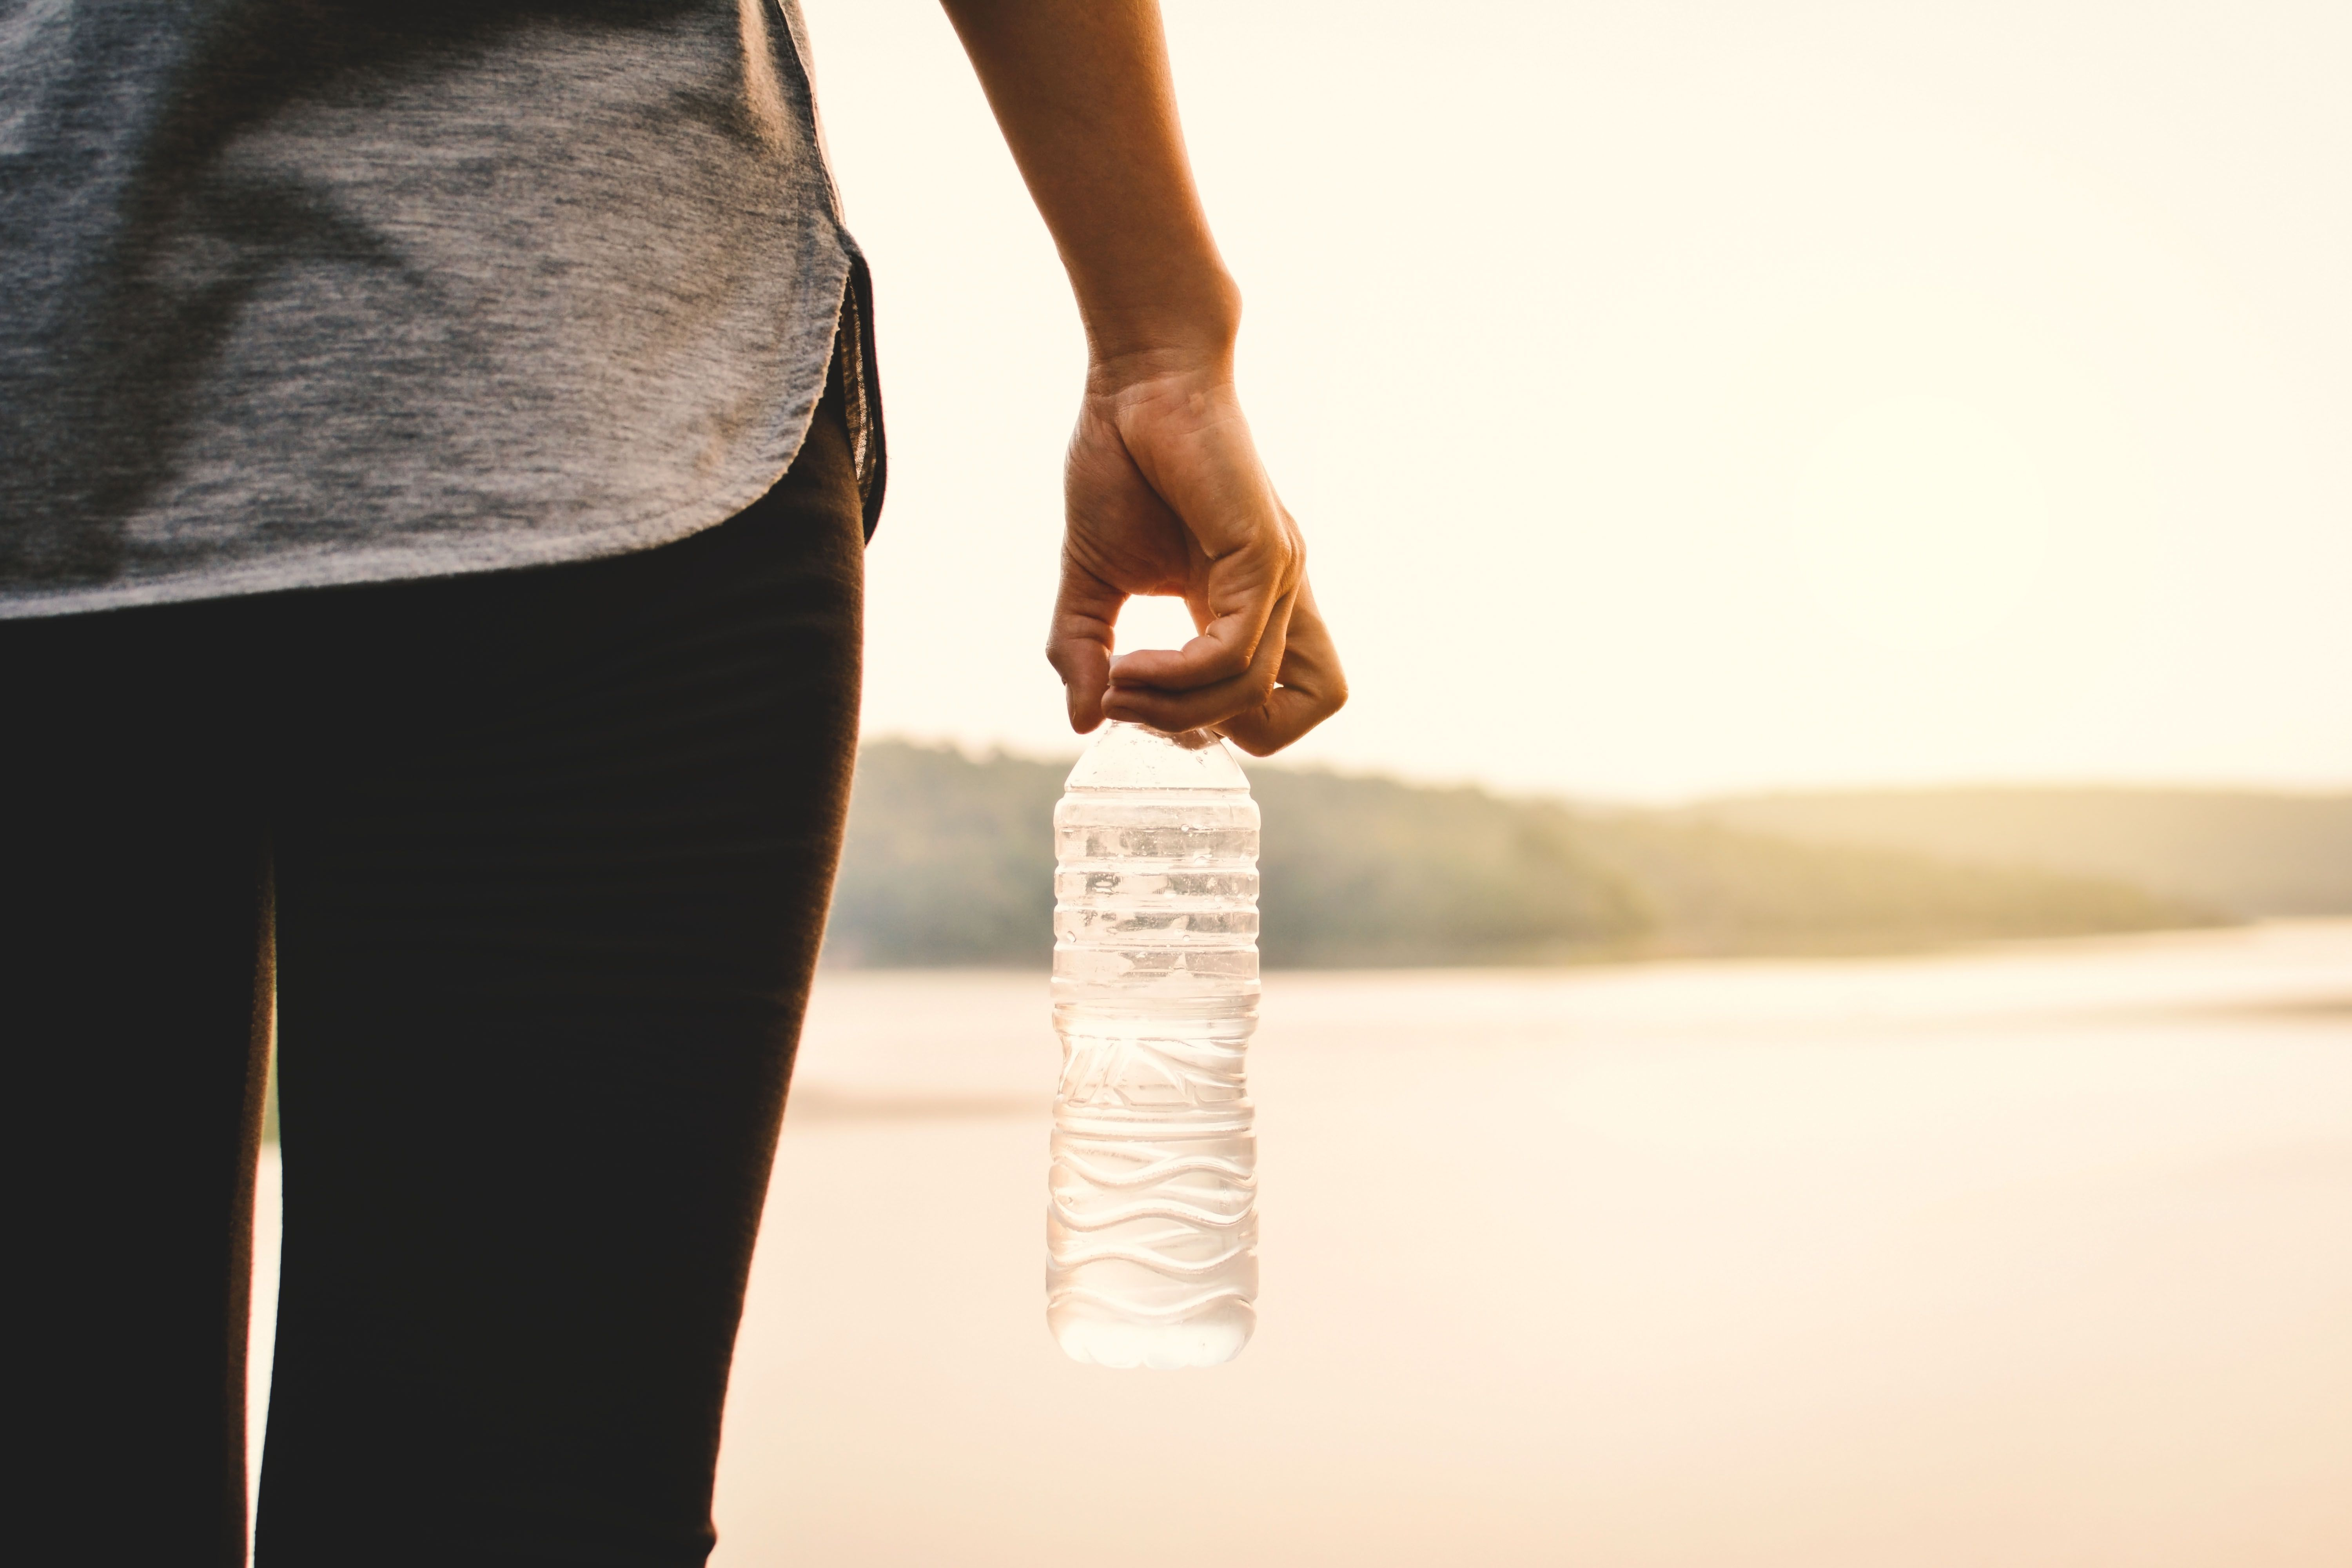 Midsection Of Woman Holding Water Bottle At Beach